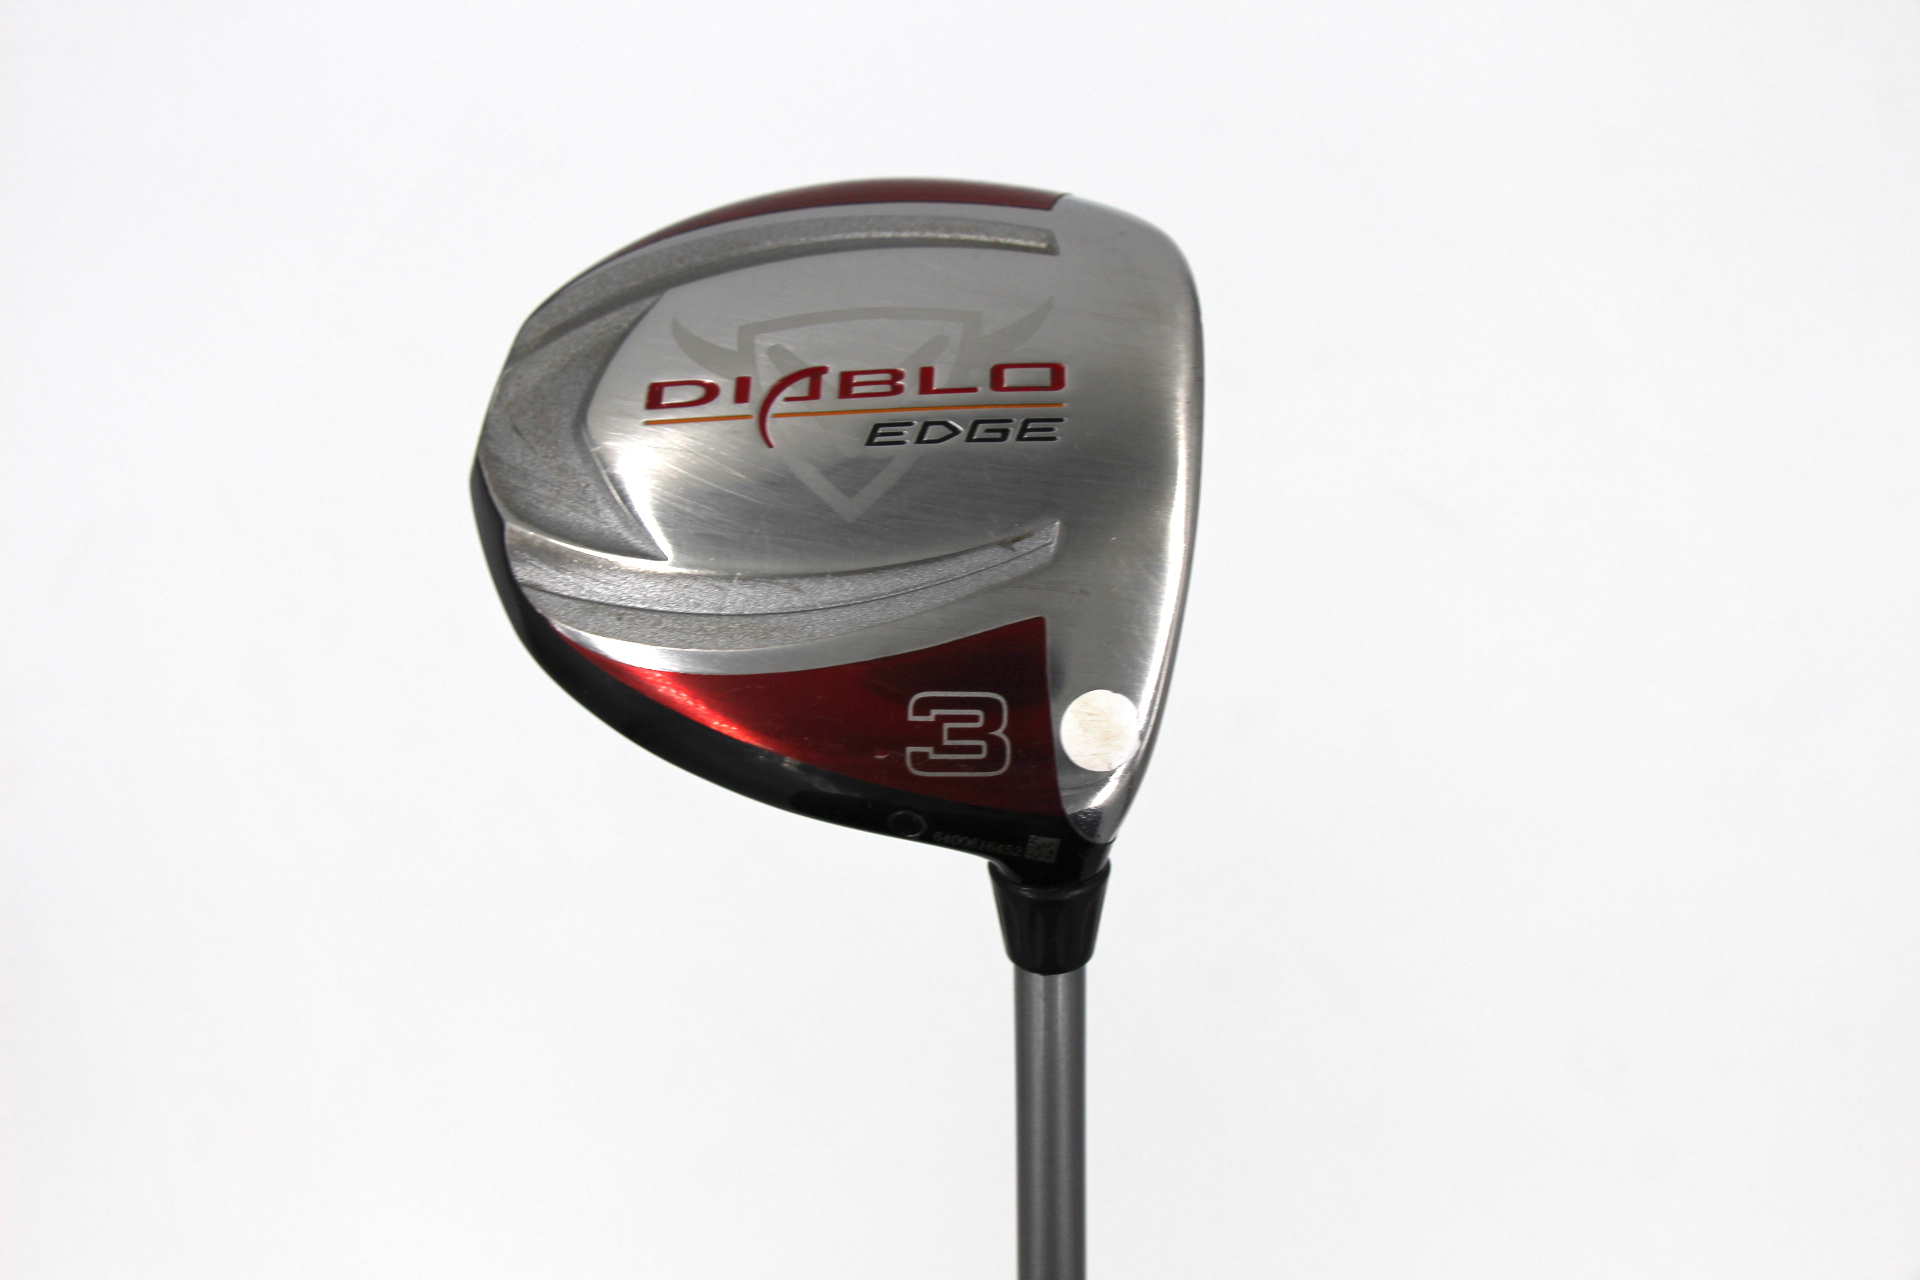 Callaway Diablo Edge Ladies 3-Wood Fairway